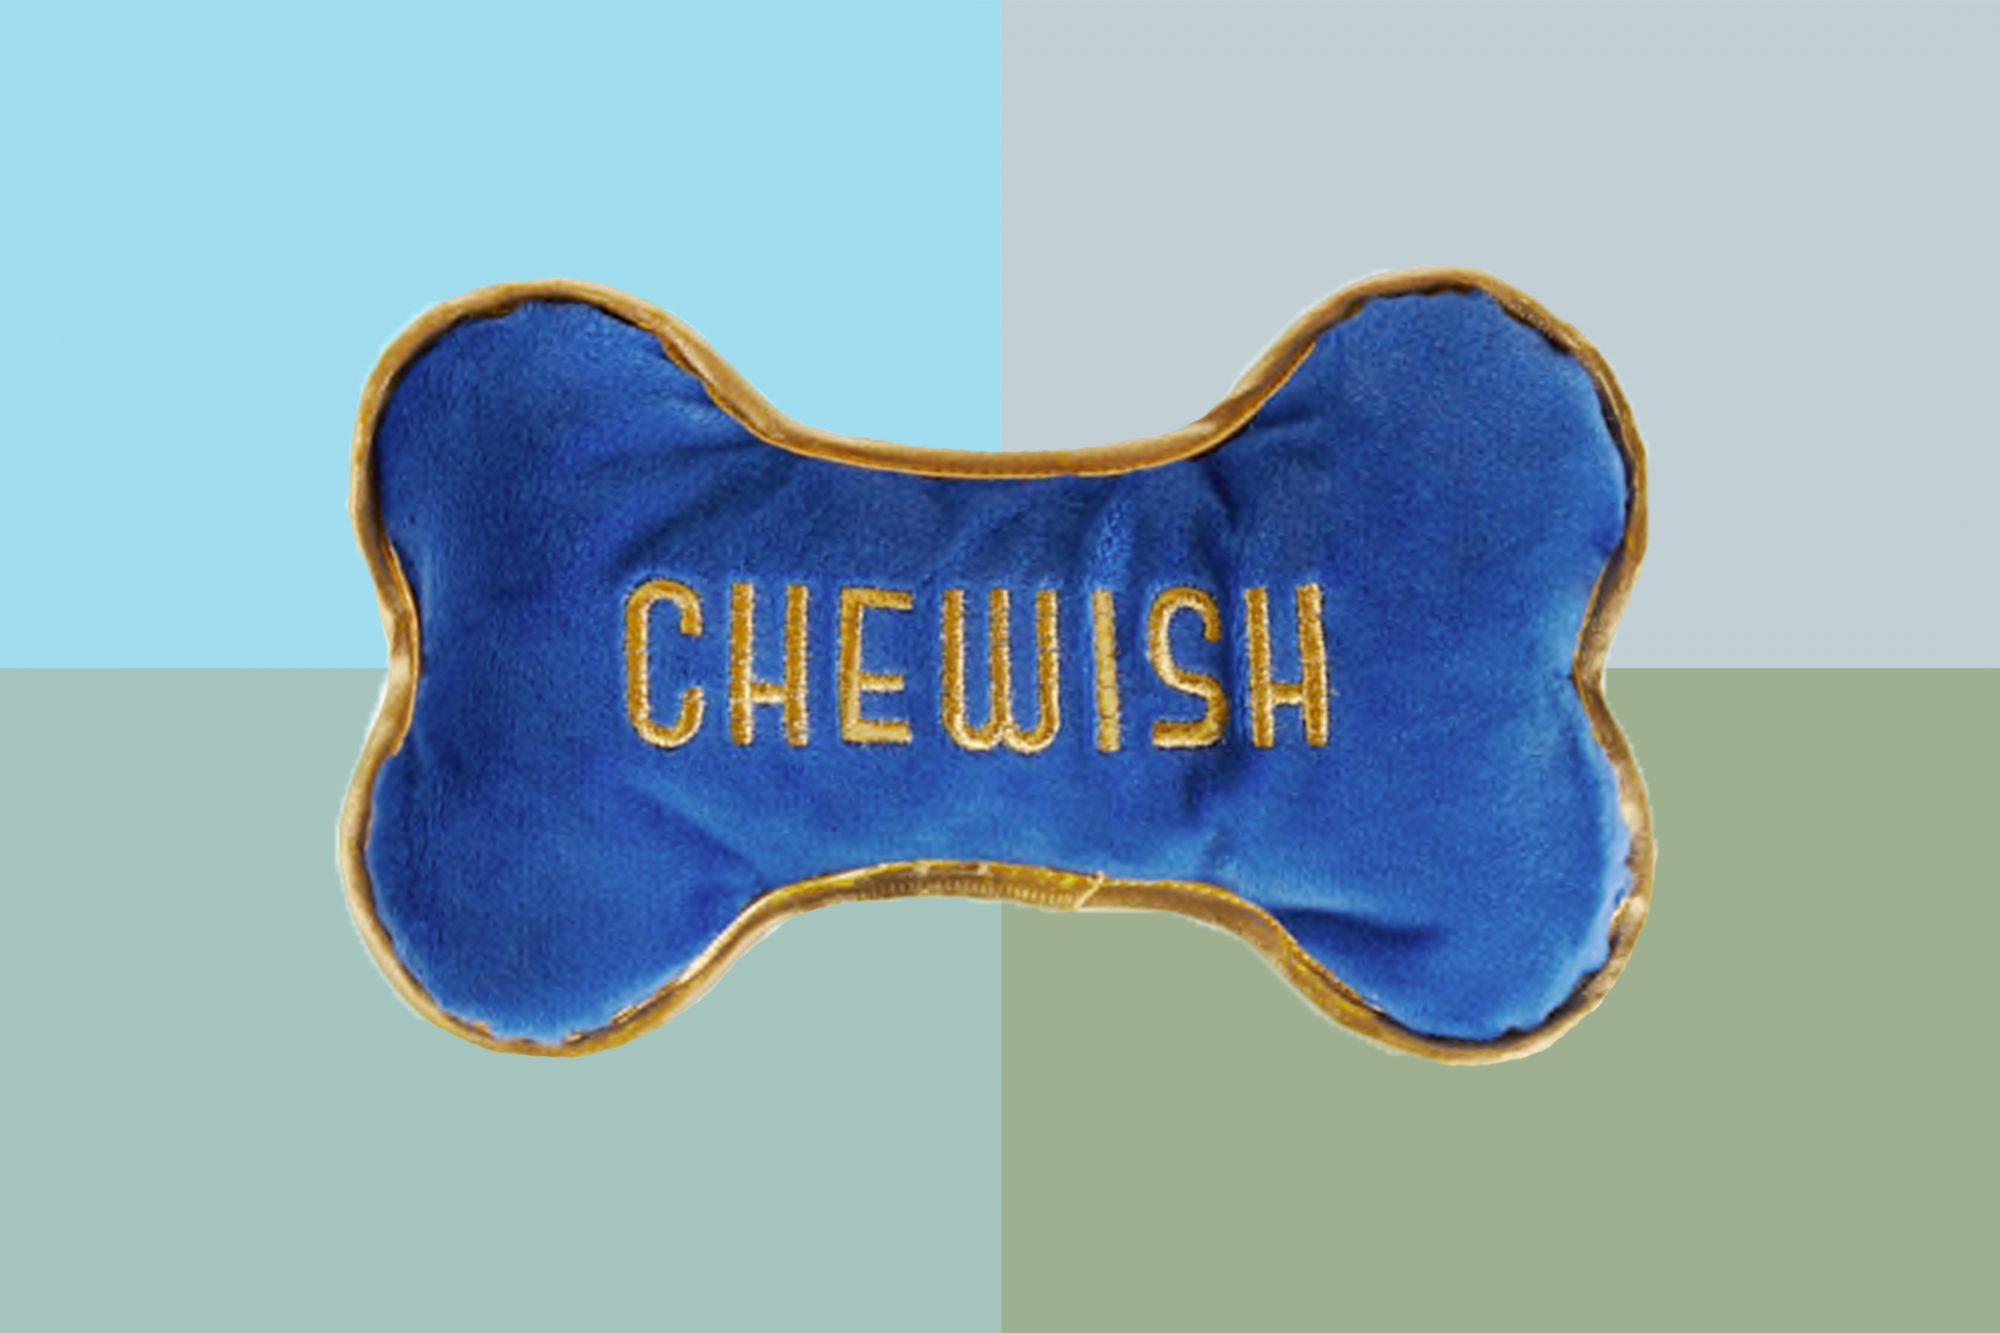 Plushie dog bone with the word Chewish embroidered on the front.